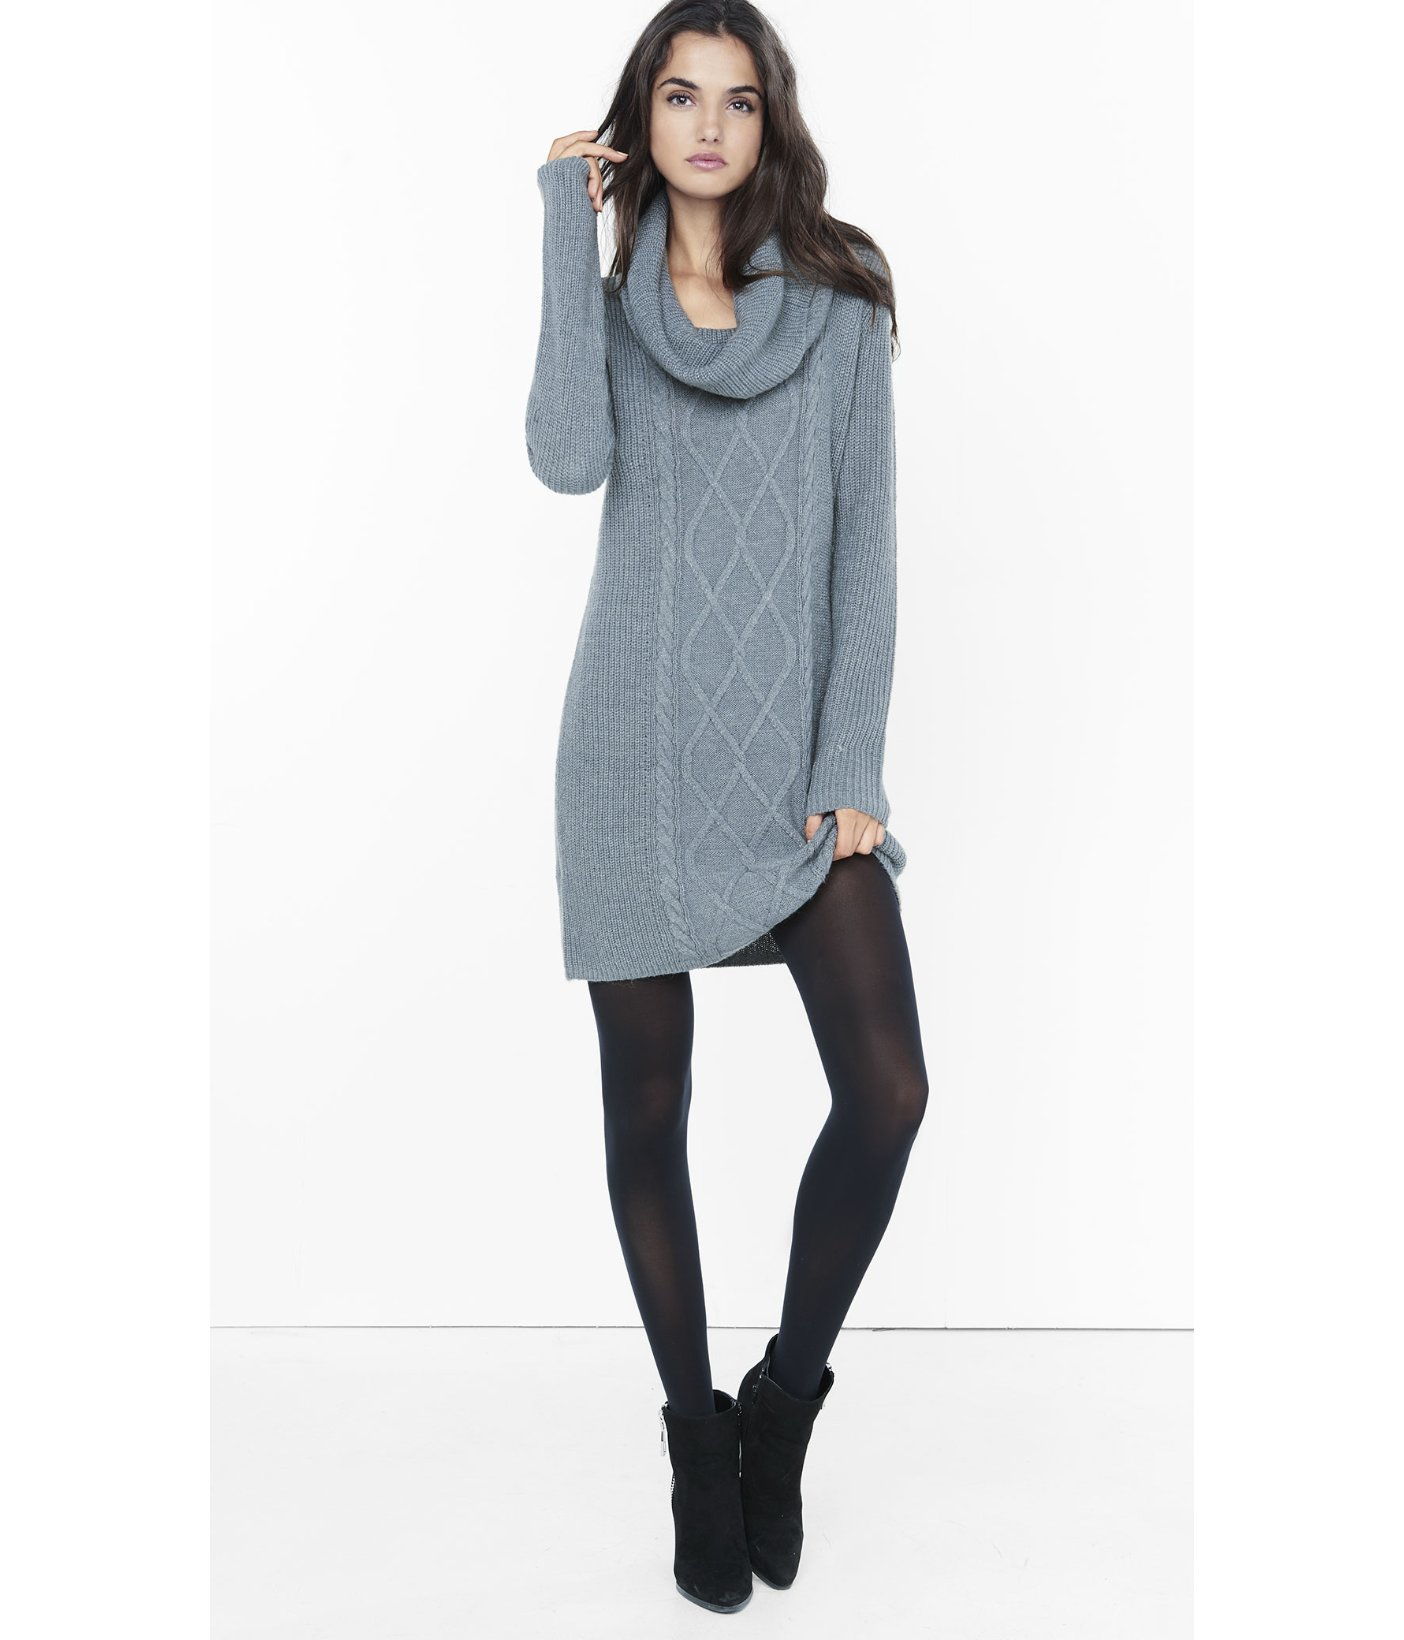 fd6acff527 Express Gray Cowl Neck Cable Knit Sweater Dress in Gray - Lyst